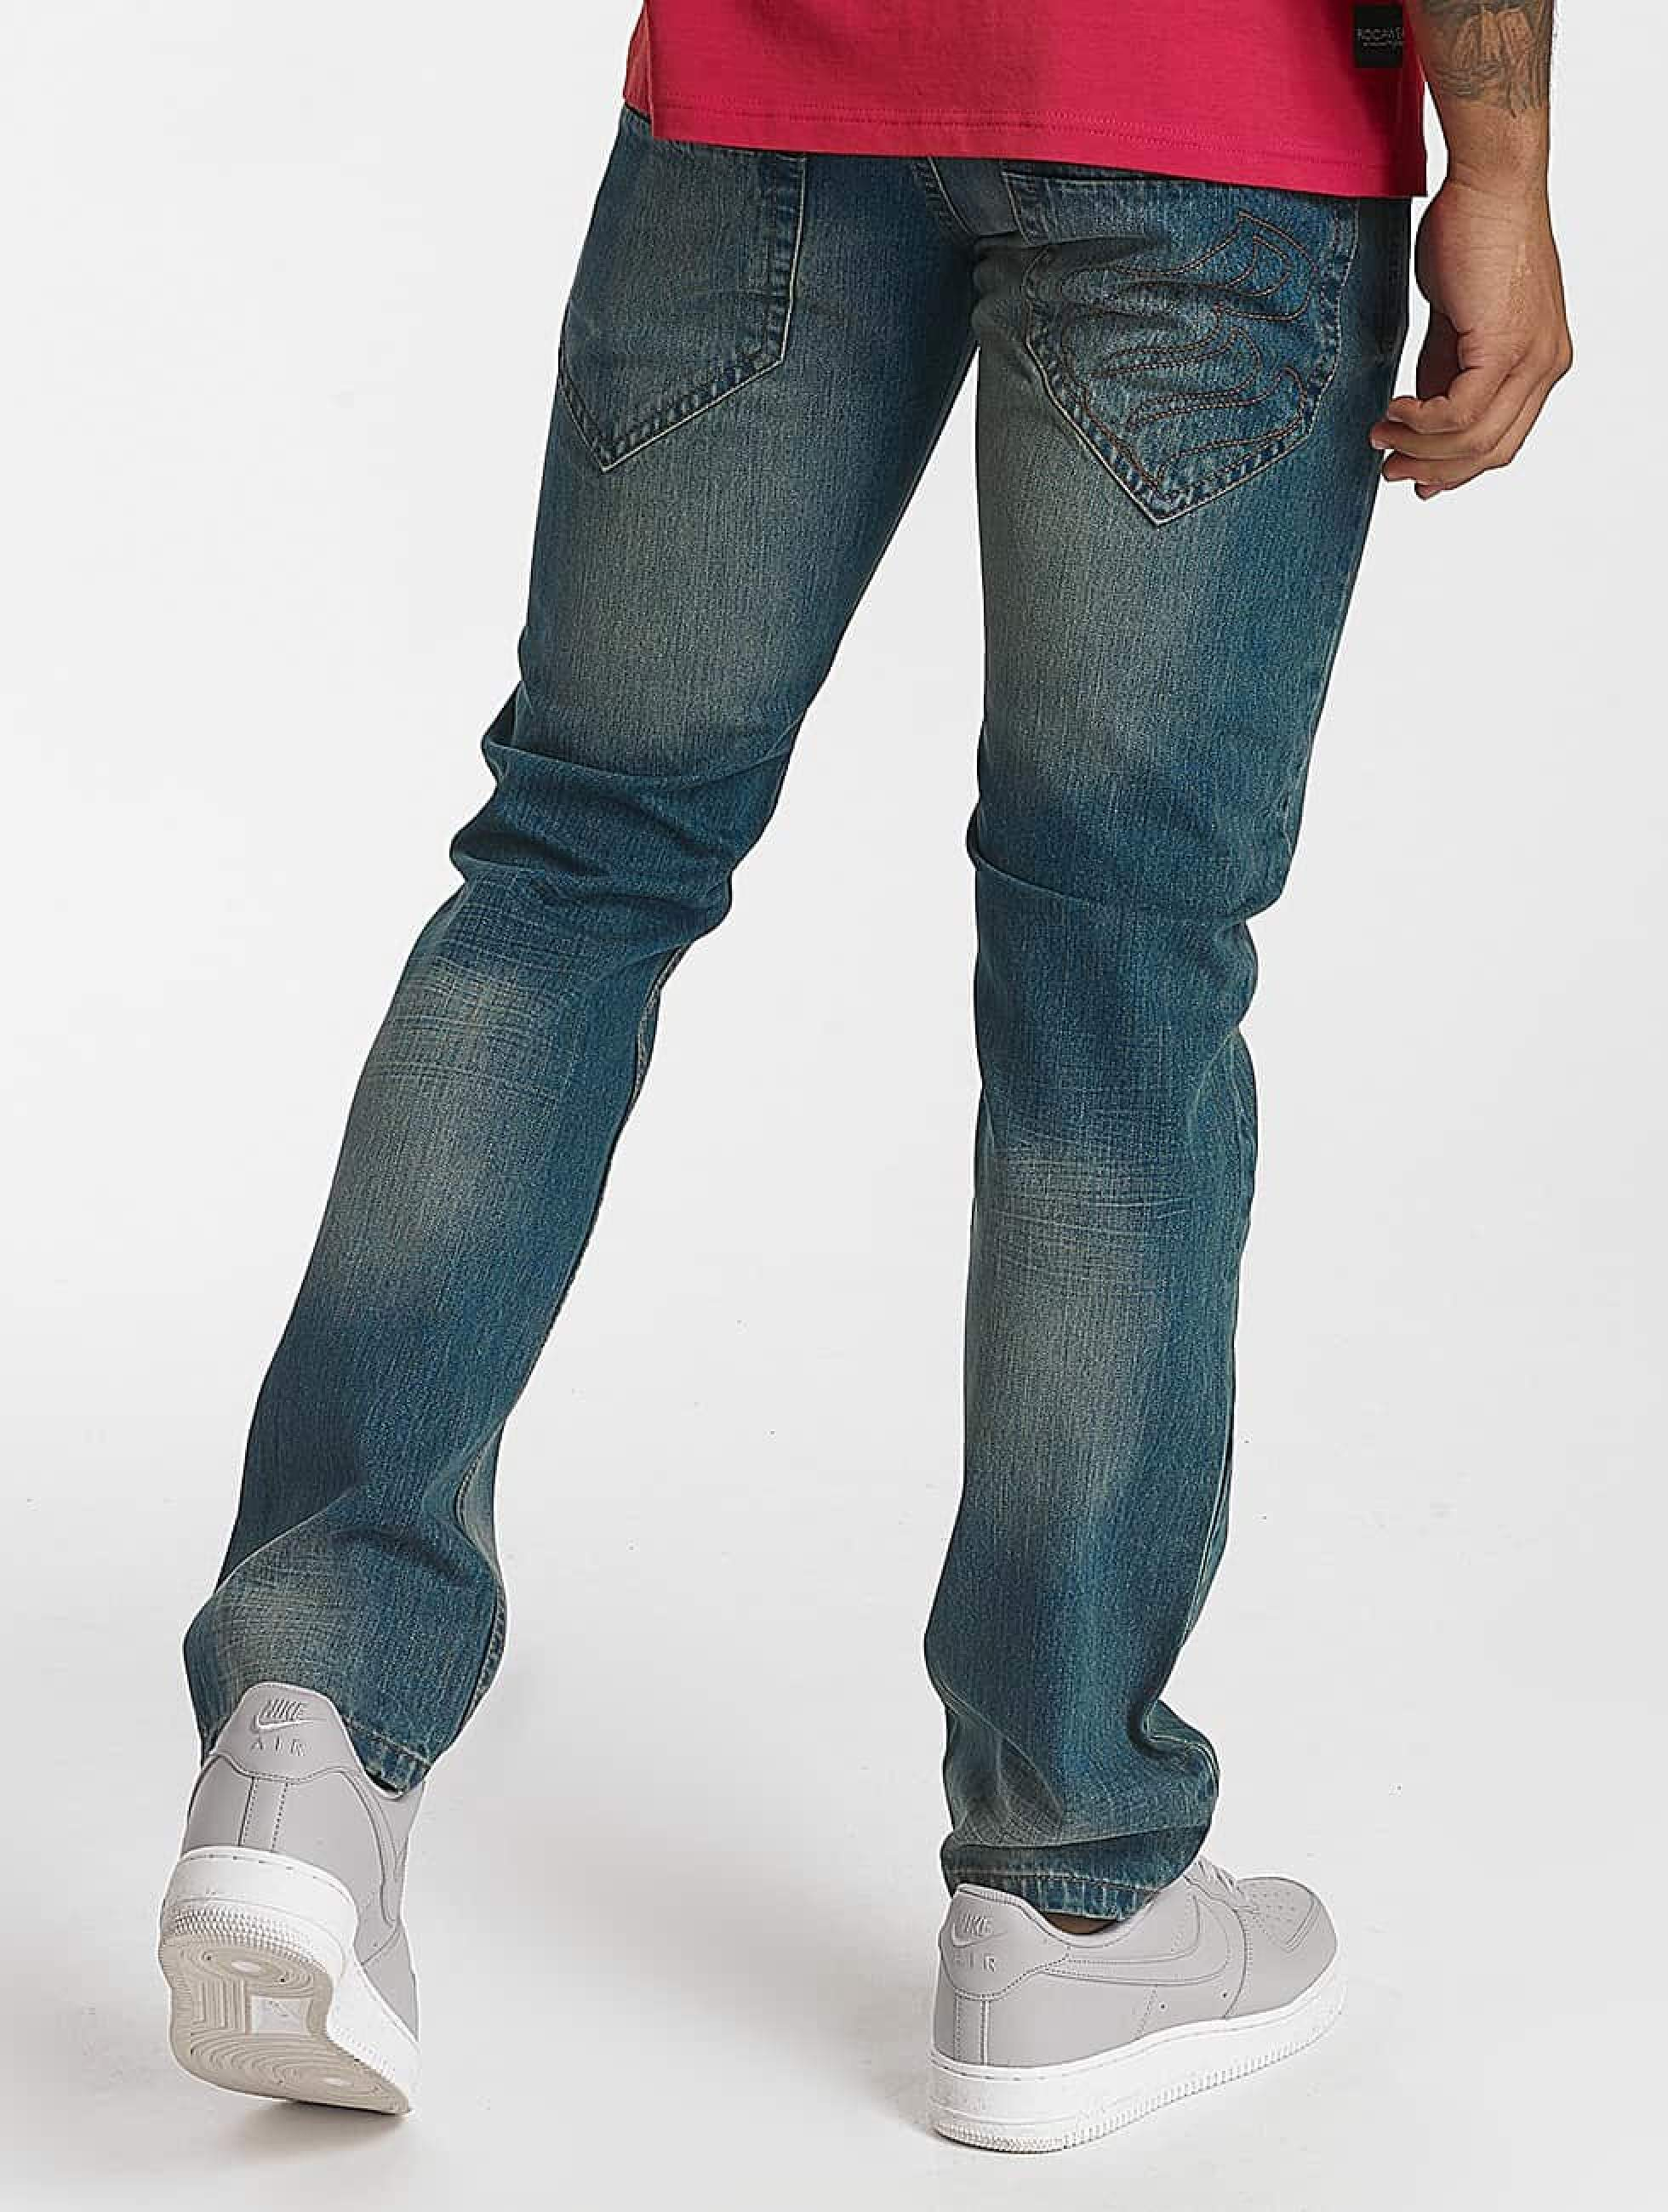 Jeans Jean Homme Droite Coupe Relax Fit Rocawear a1TwWvqwU